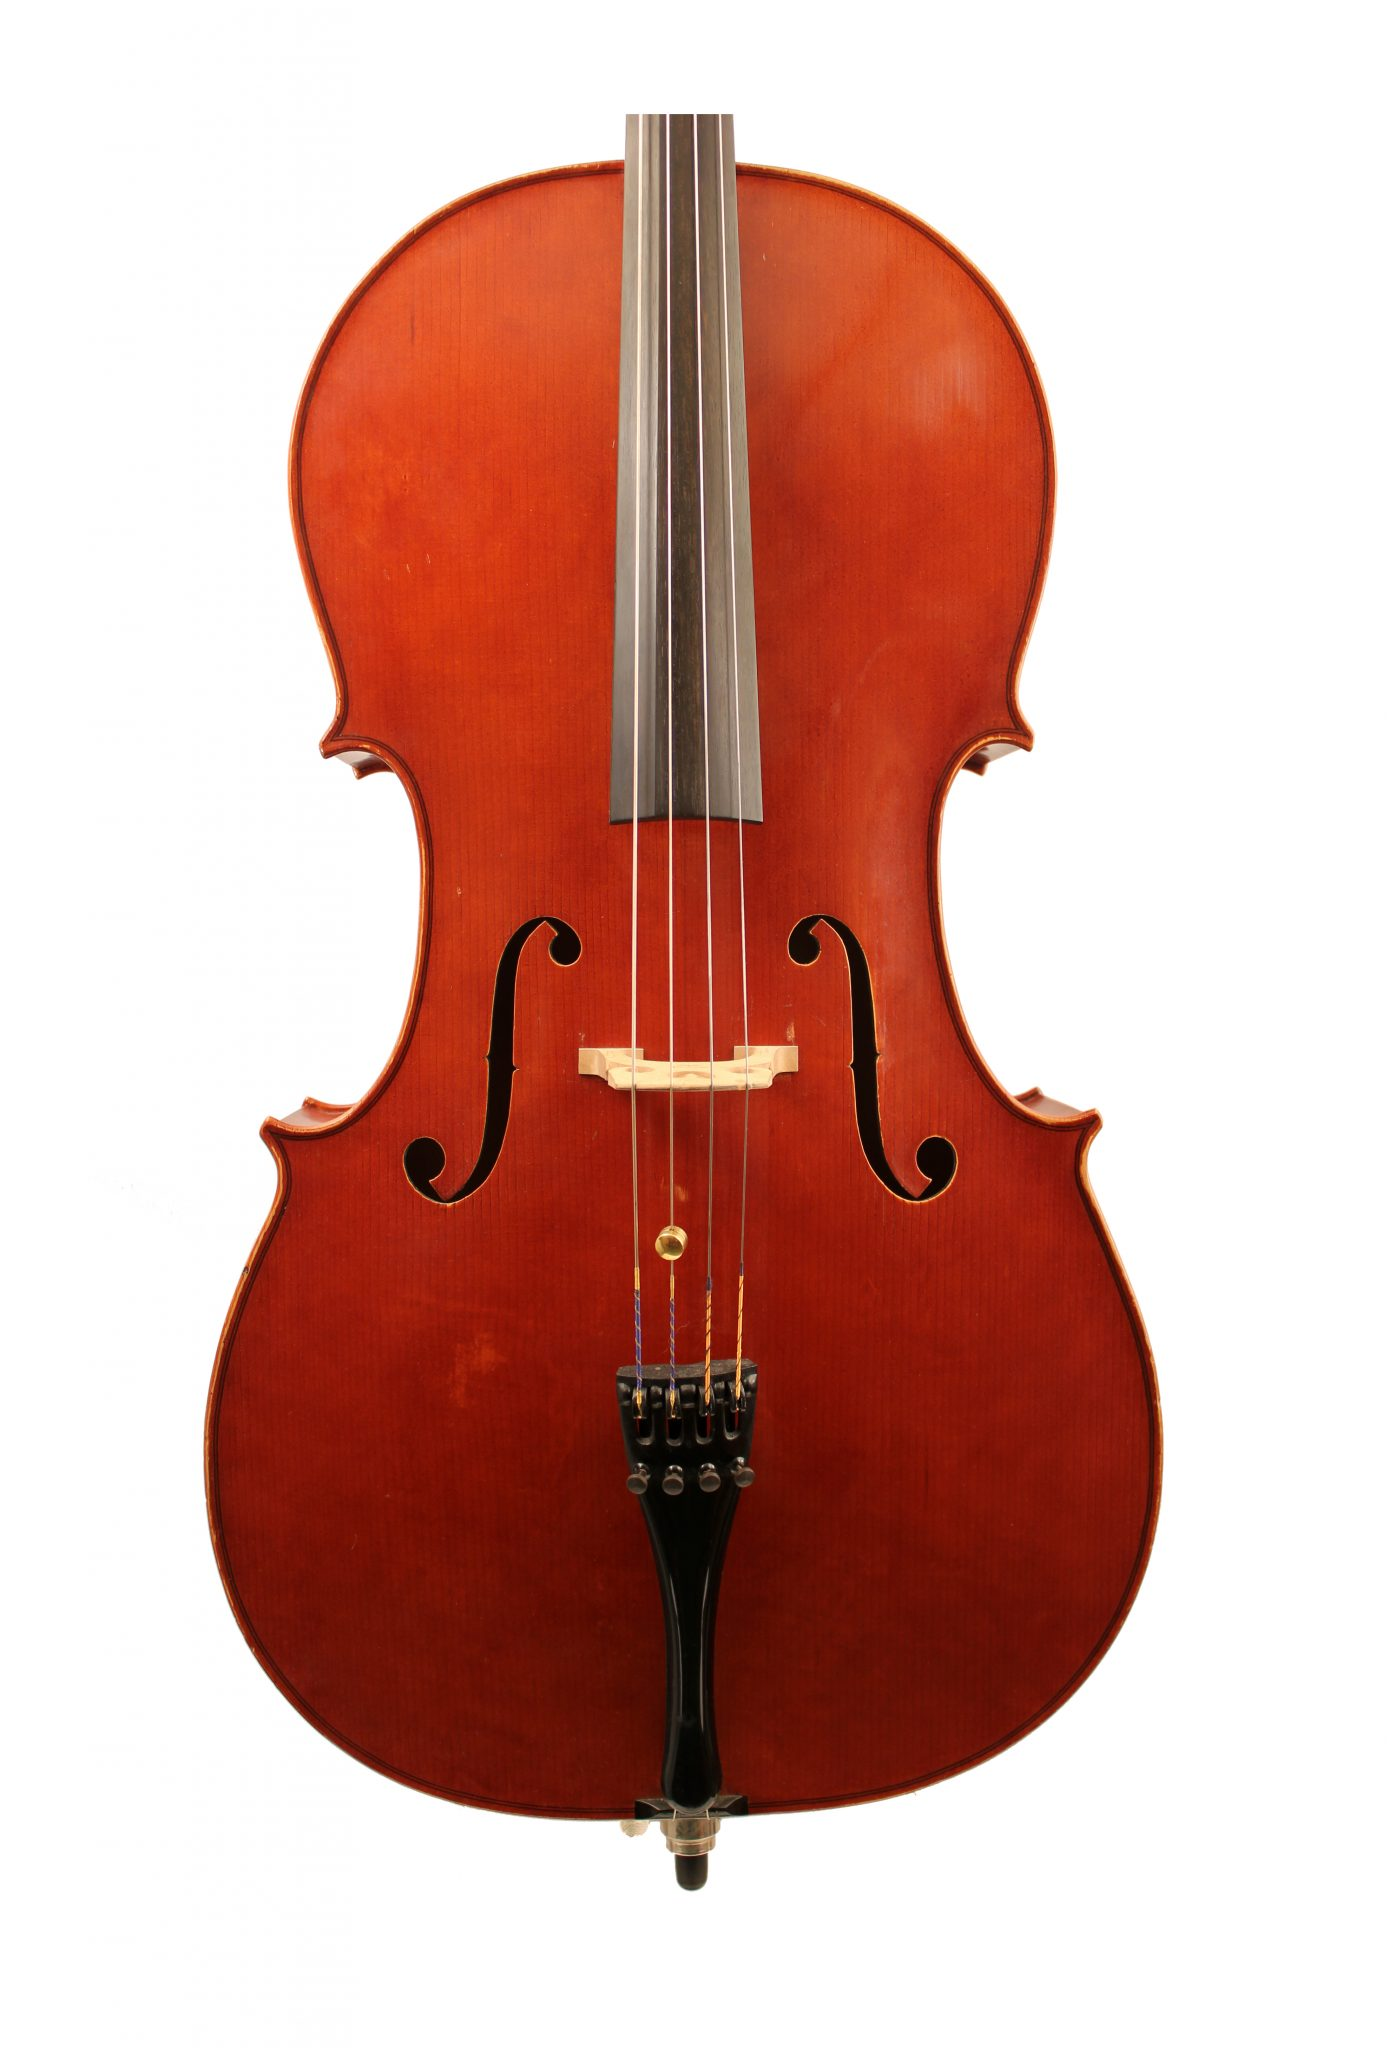 Cello by Andy Quelch for sale at Bridgewood and Neitzert London